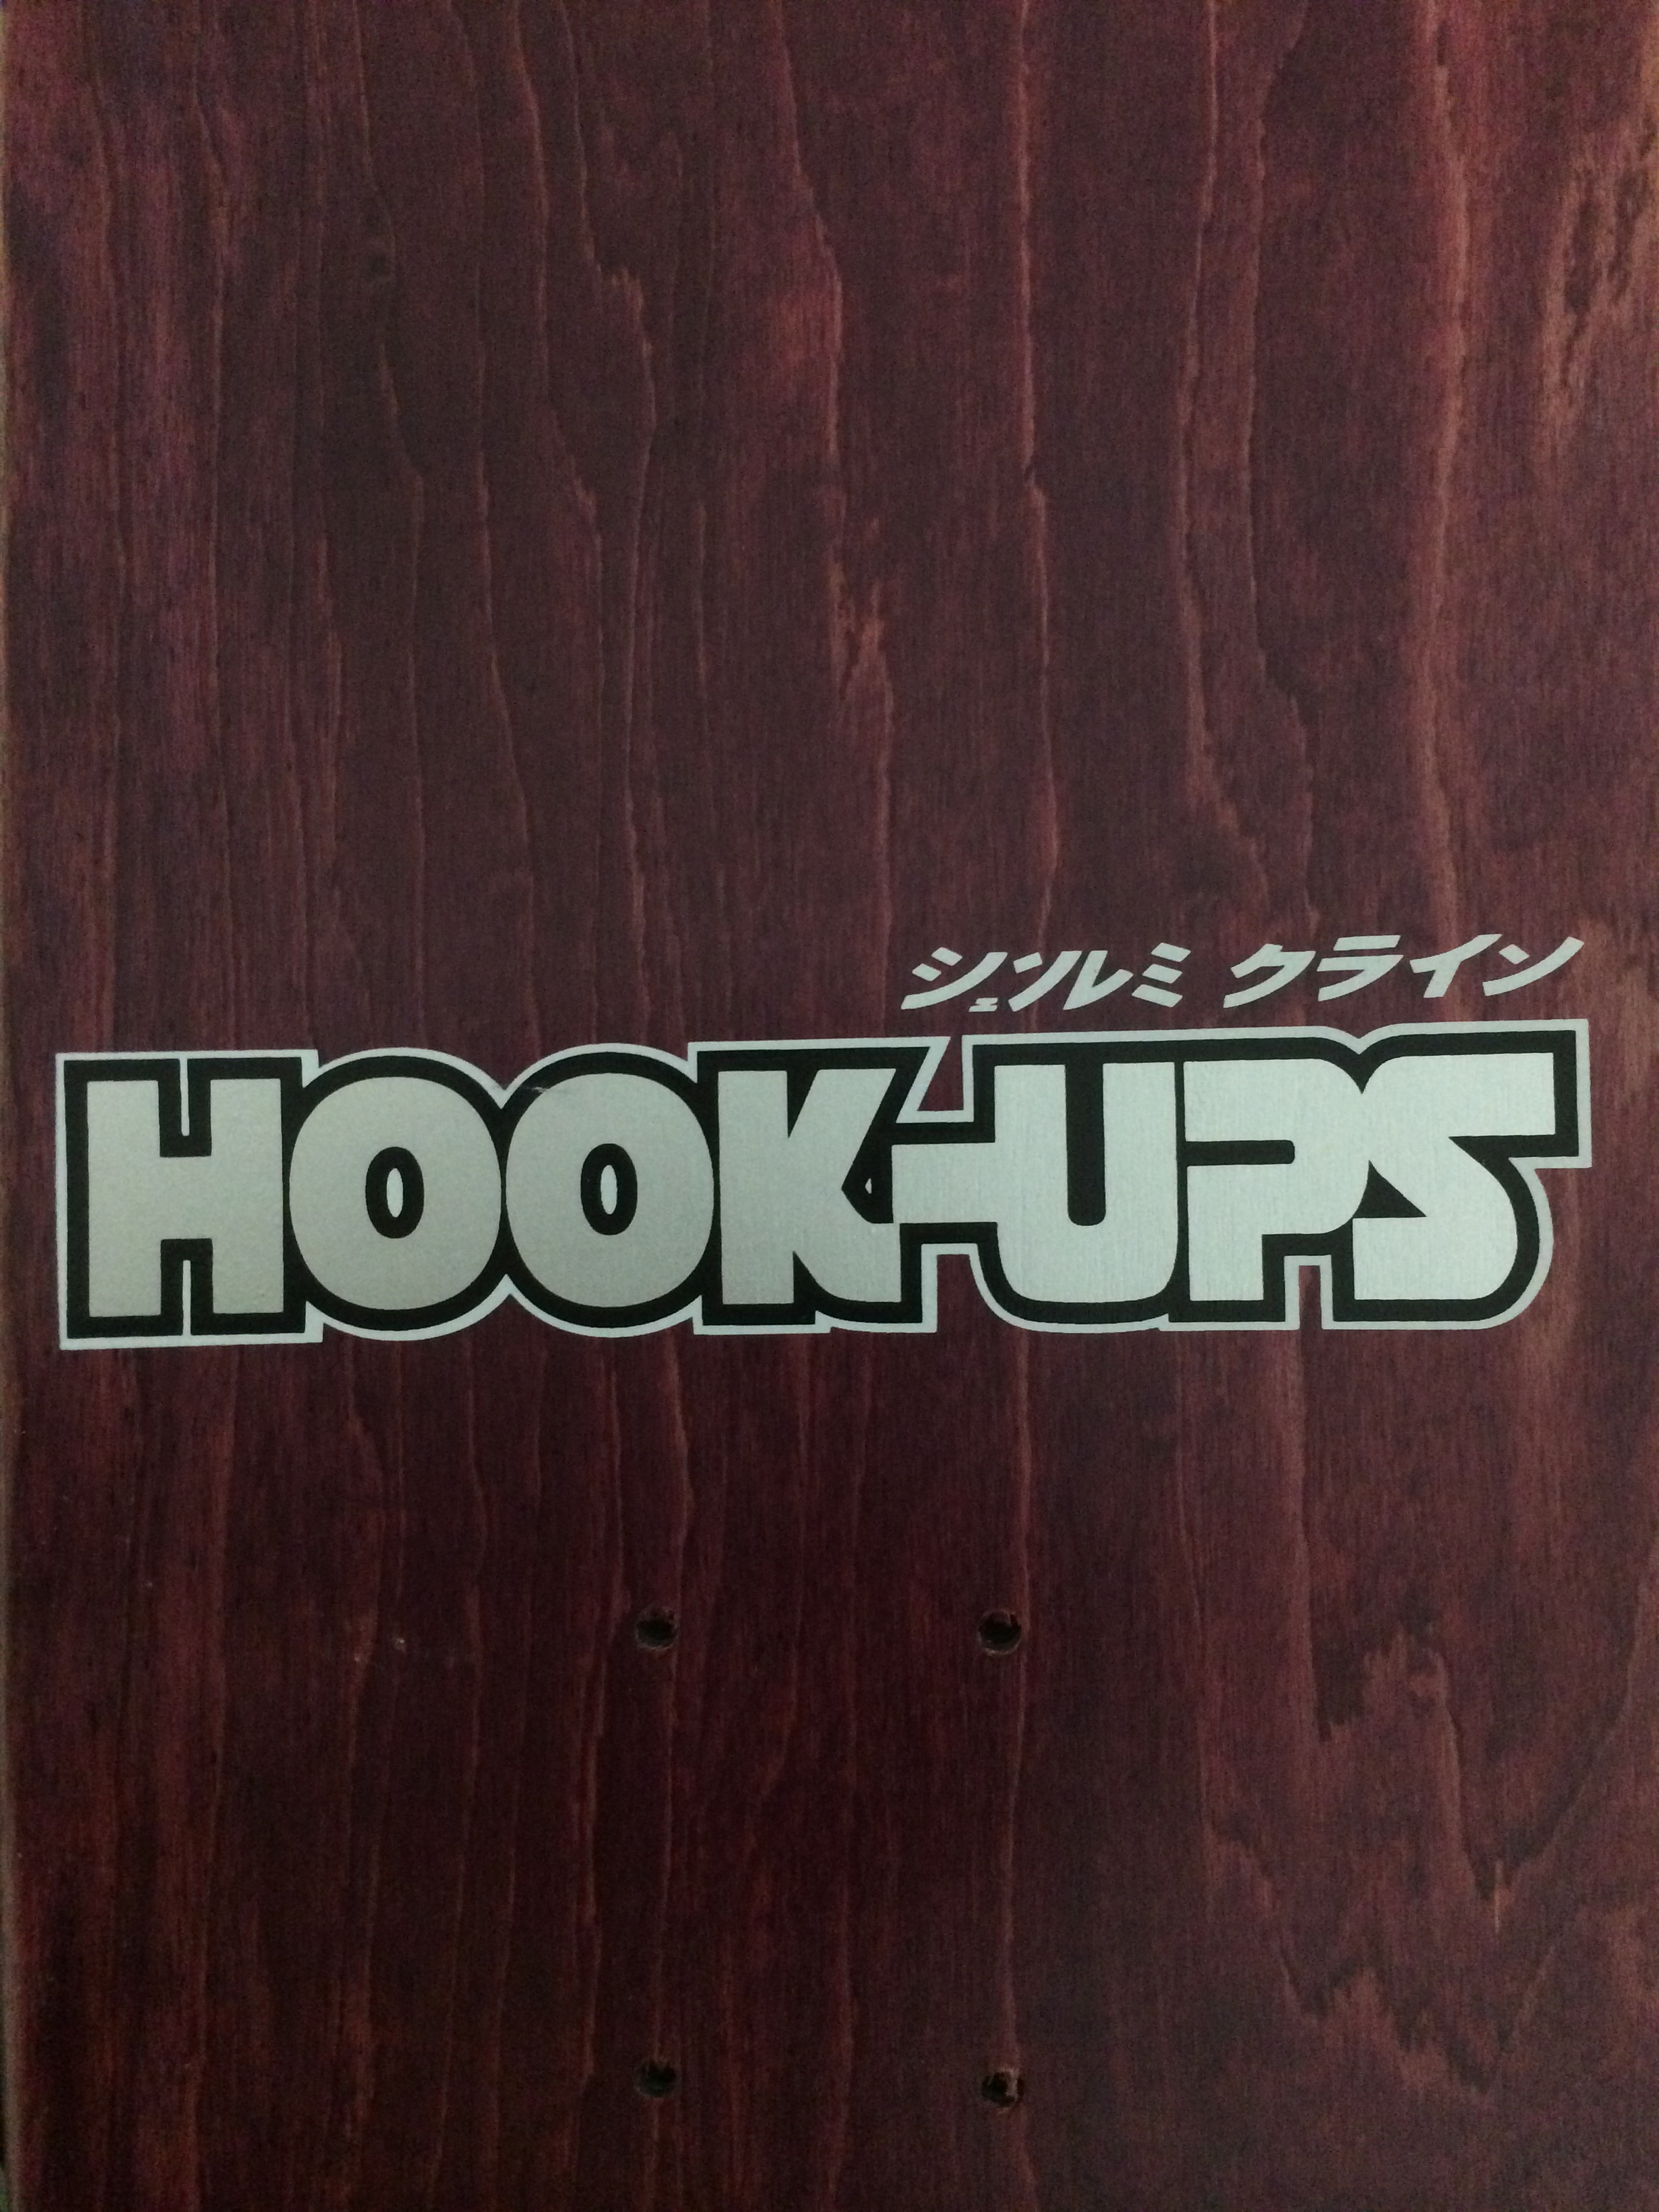 Another name for hook up